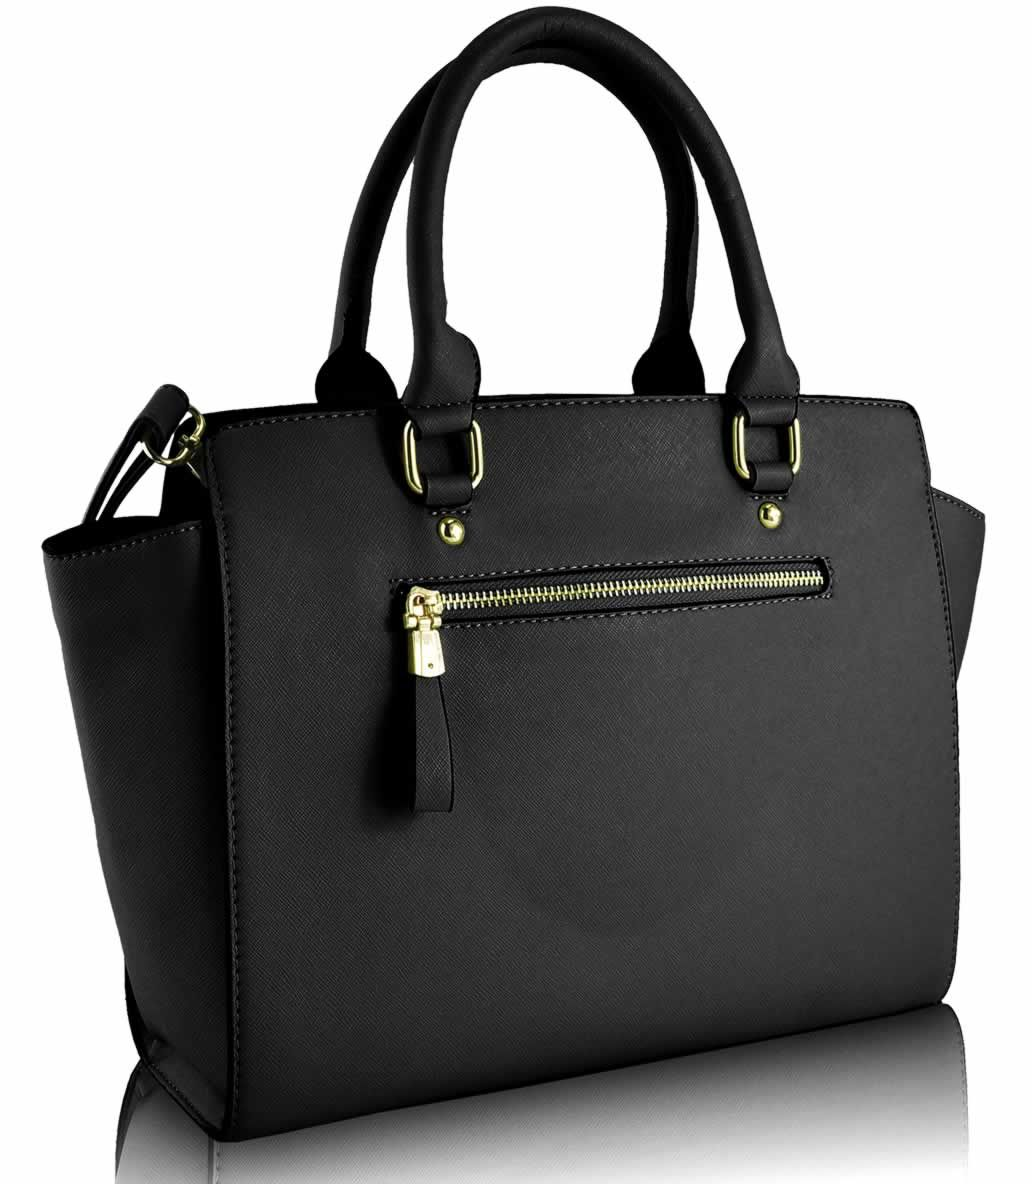 Image Result For Black Hand Bags